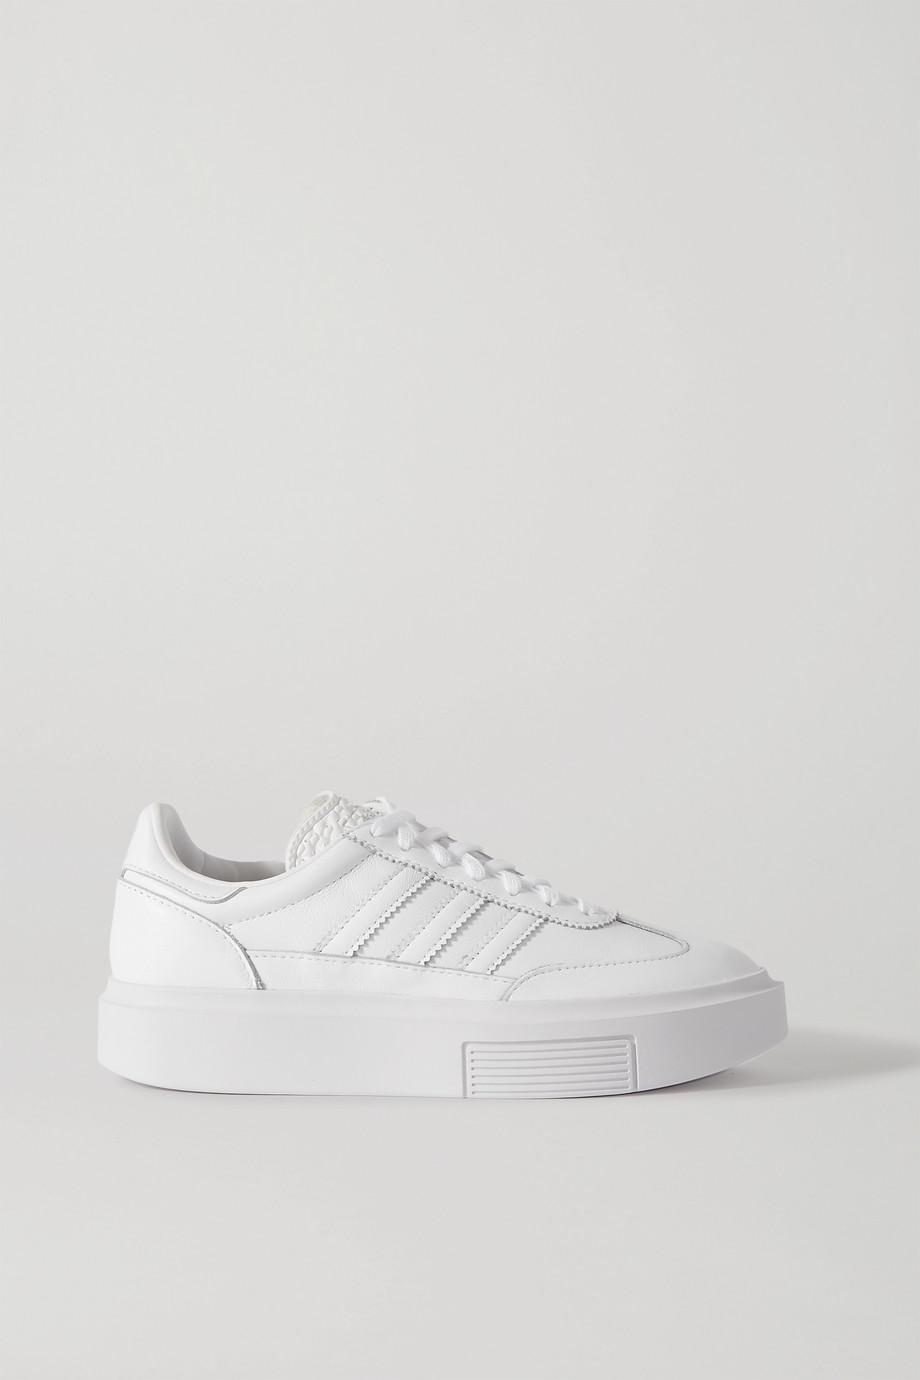 adidas Originals Sleek Super 72 leather platform sneakers